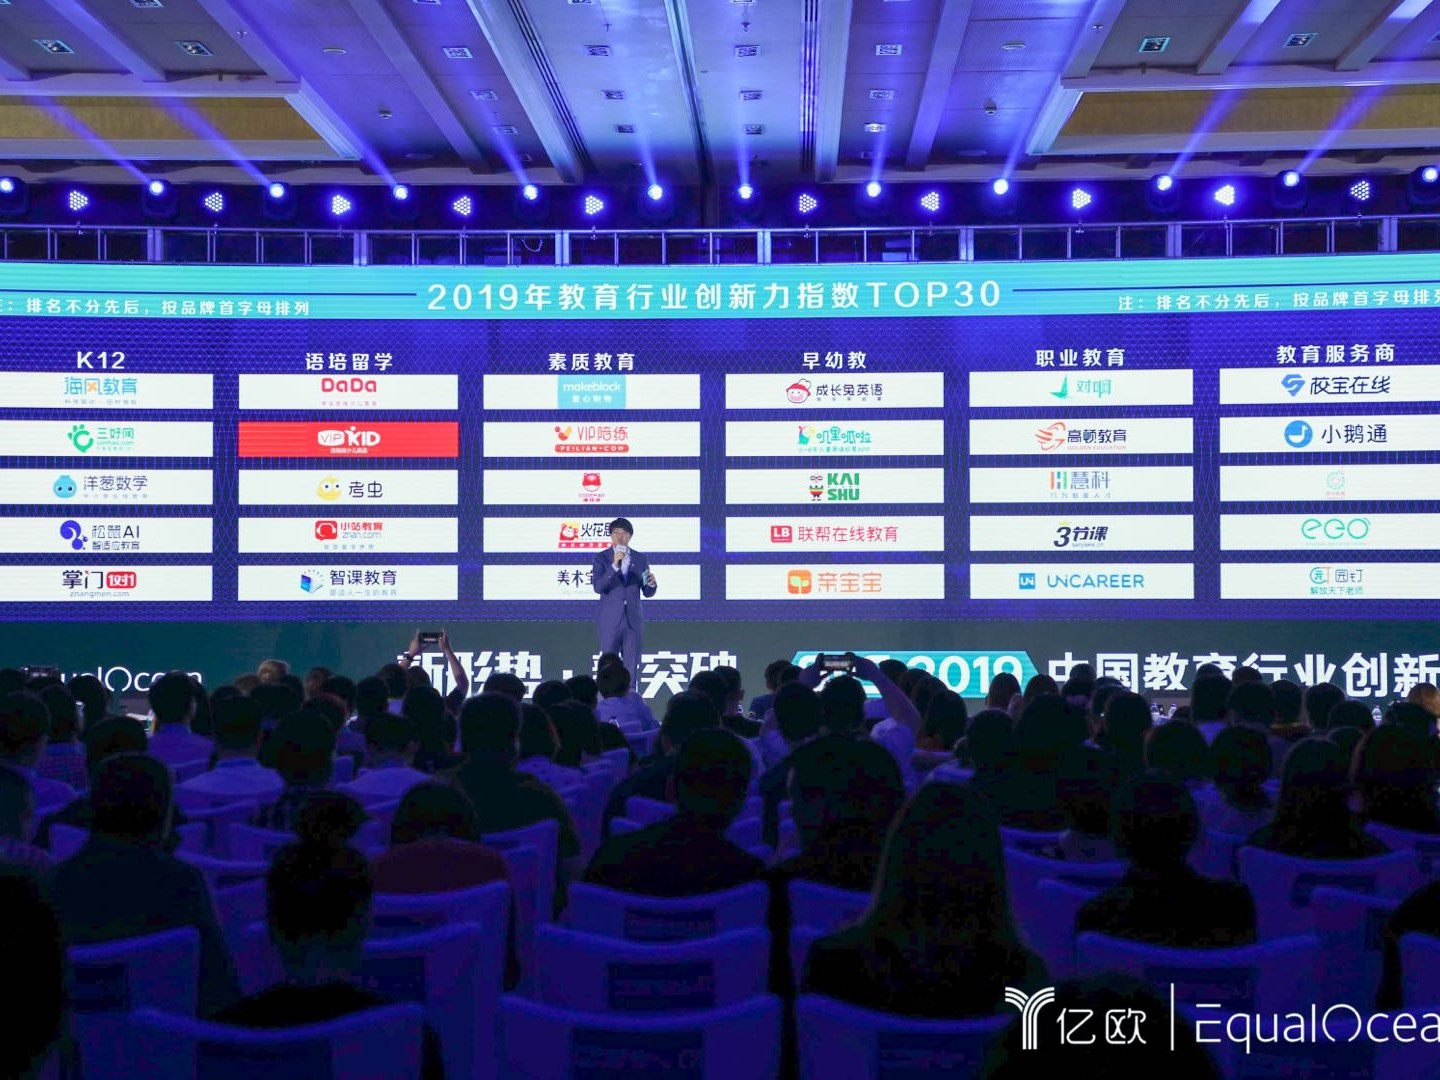 EO Company Releases List of Top 30 China Education Innovation Enterprises